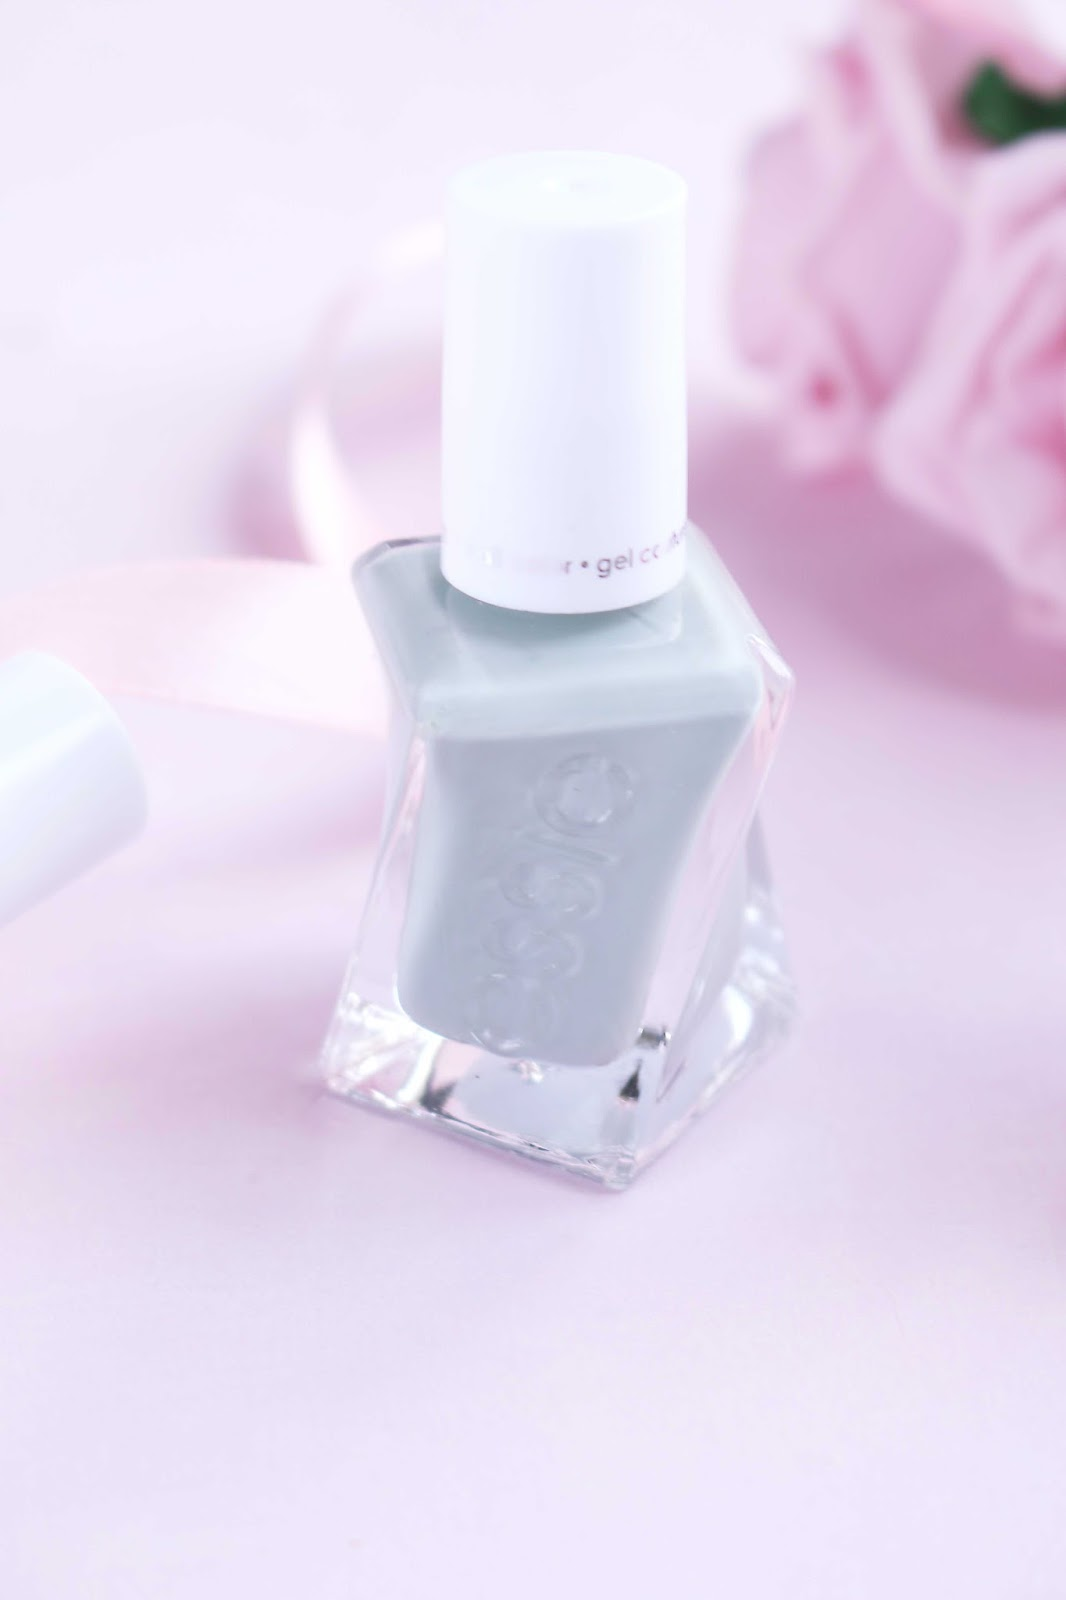 Beauty, Nails, essie, Wedding, Wedding Beauty, Drugstore,  essie gel couture bridal collection by Monique Lhuillier, essie gel couture range, wedding nails, bridal nails , essie shades, essie bridal nail swatches,